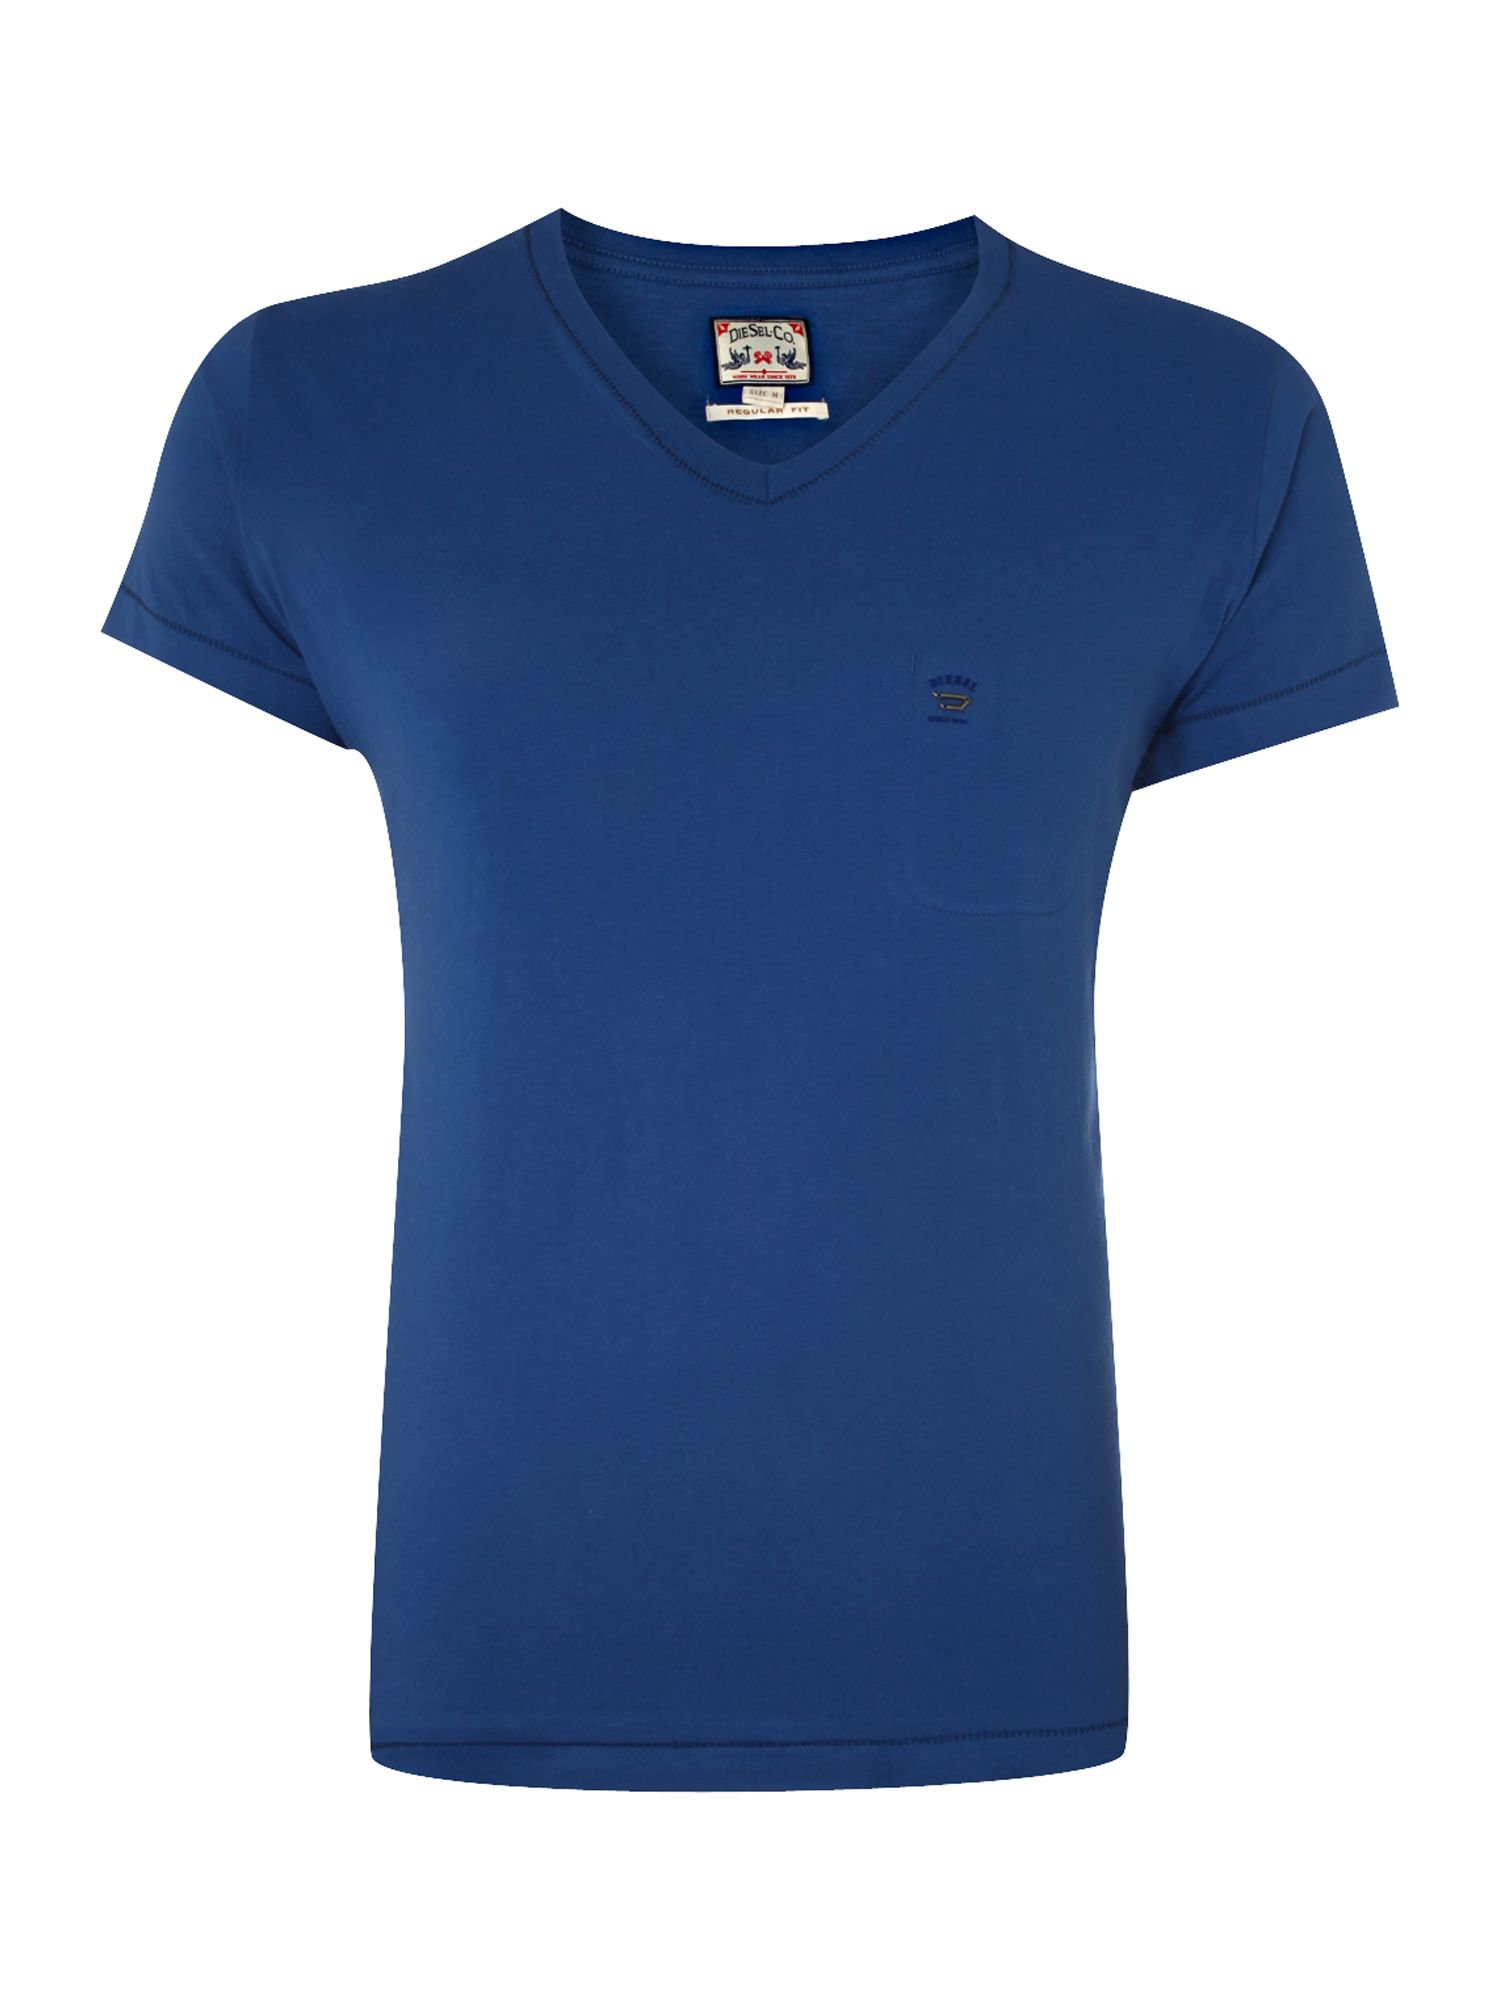 Diesel Mens Diesel Mens basic V-neck T-shirt, Blue product image